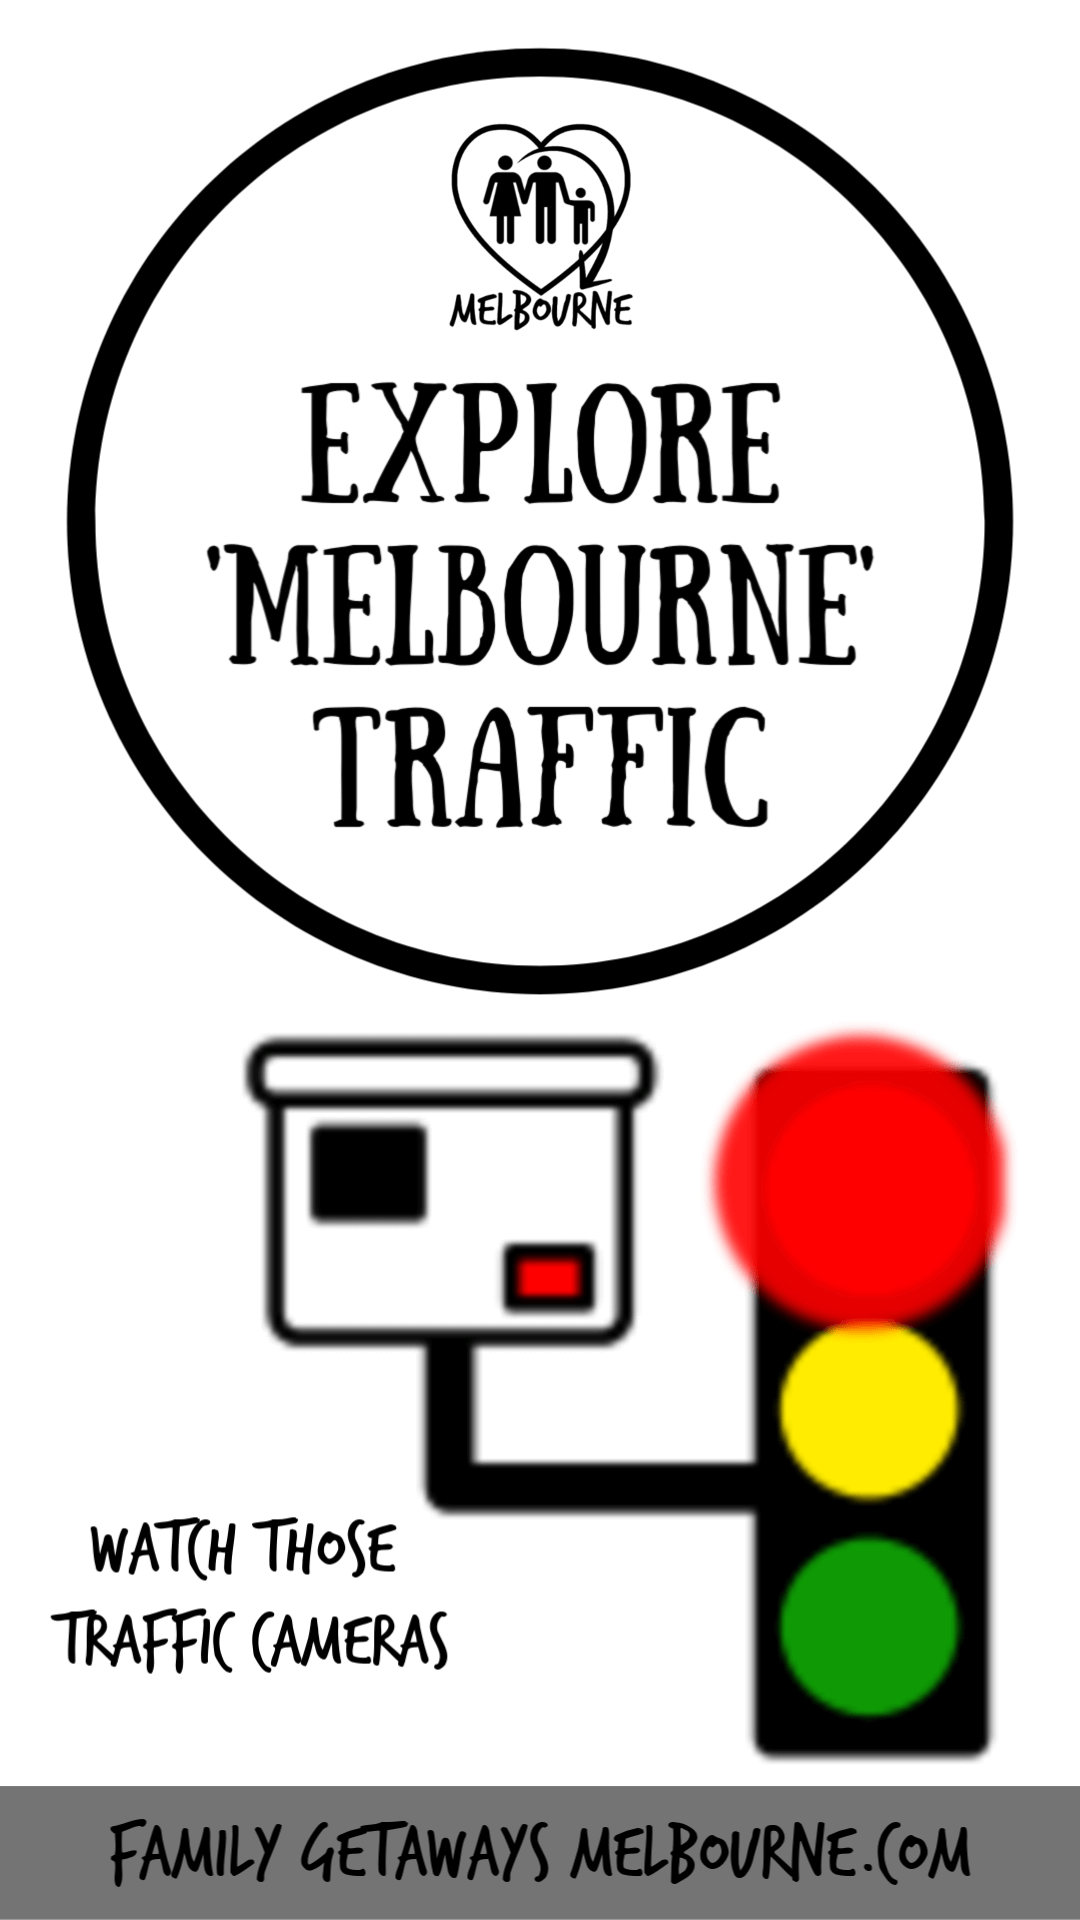 Image for information on Melbourne Traffic to pin to Pinterest